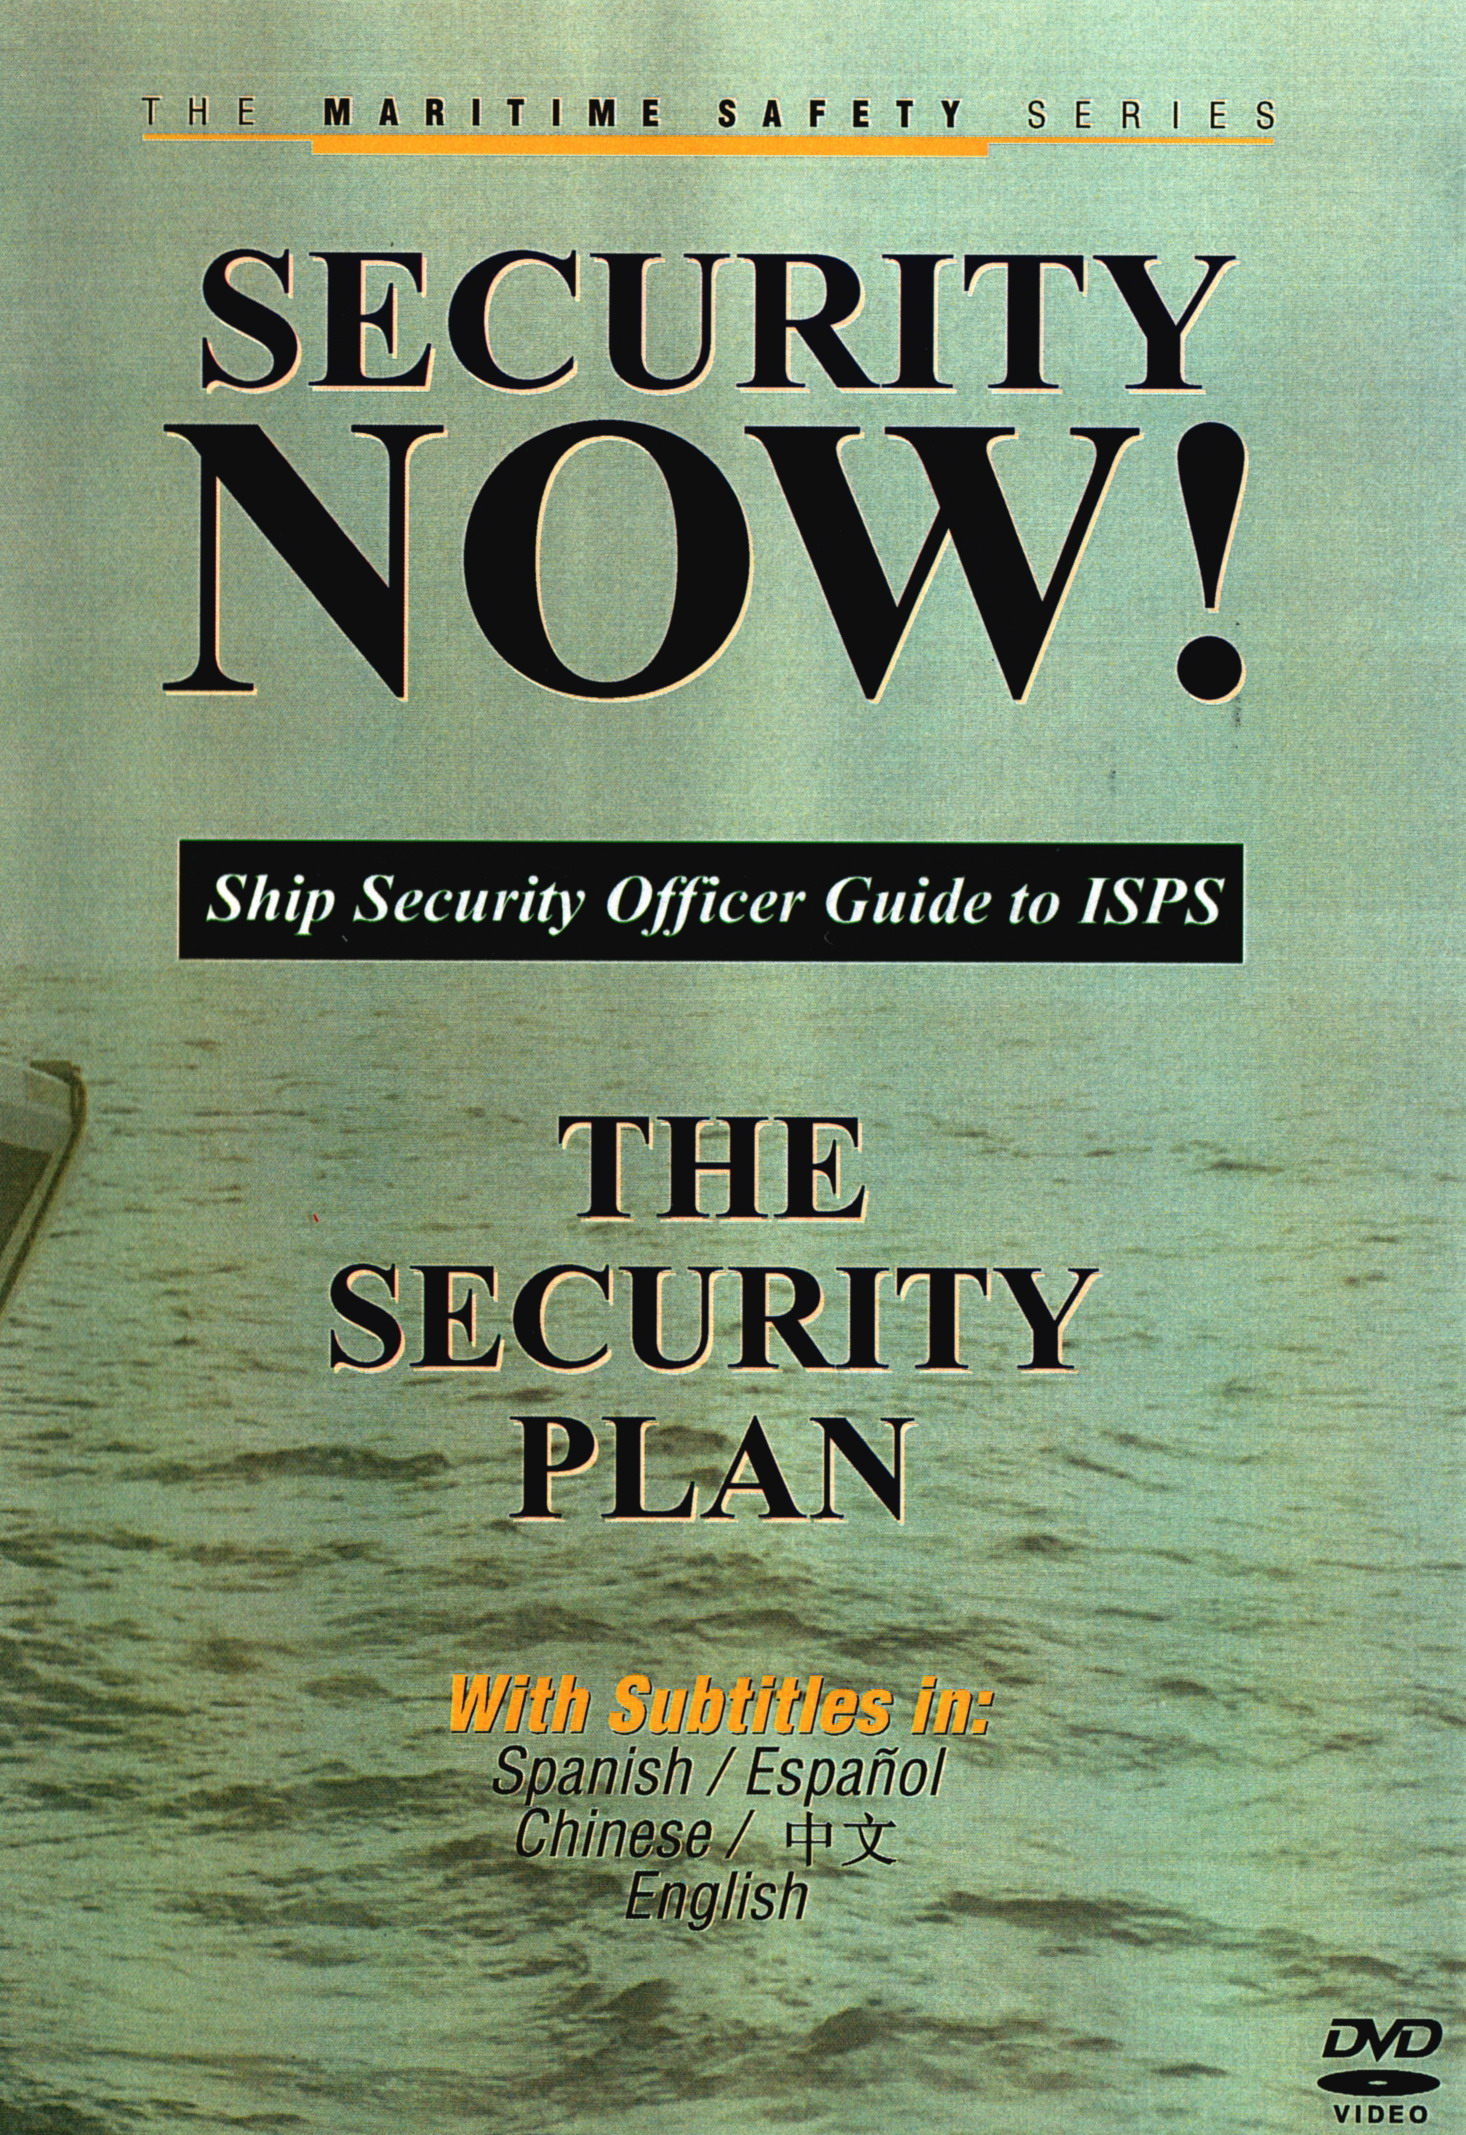 Security NOW! The Security Plan